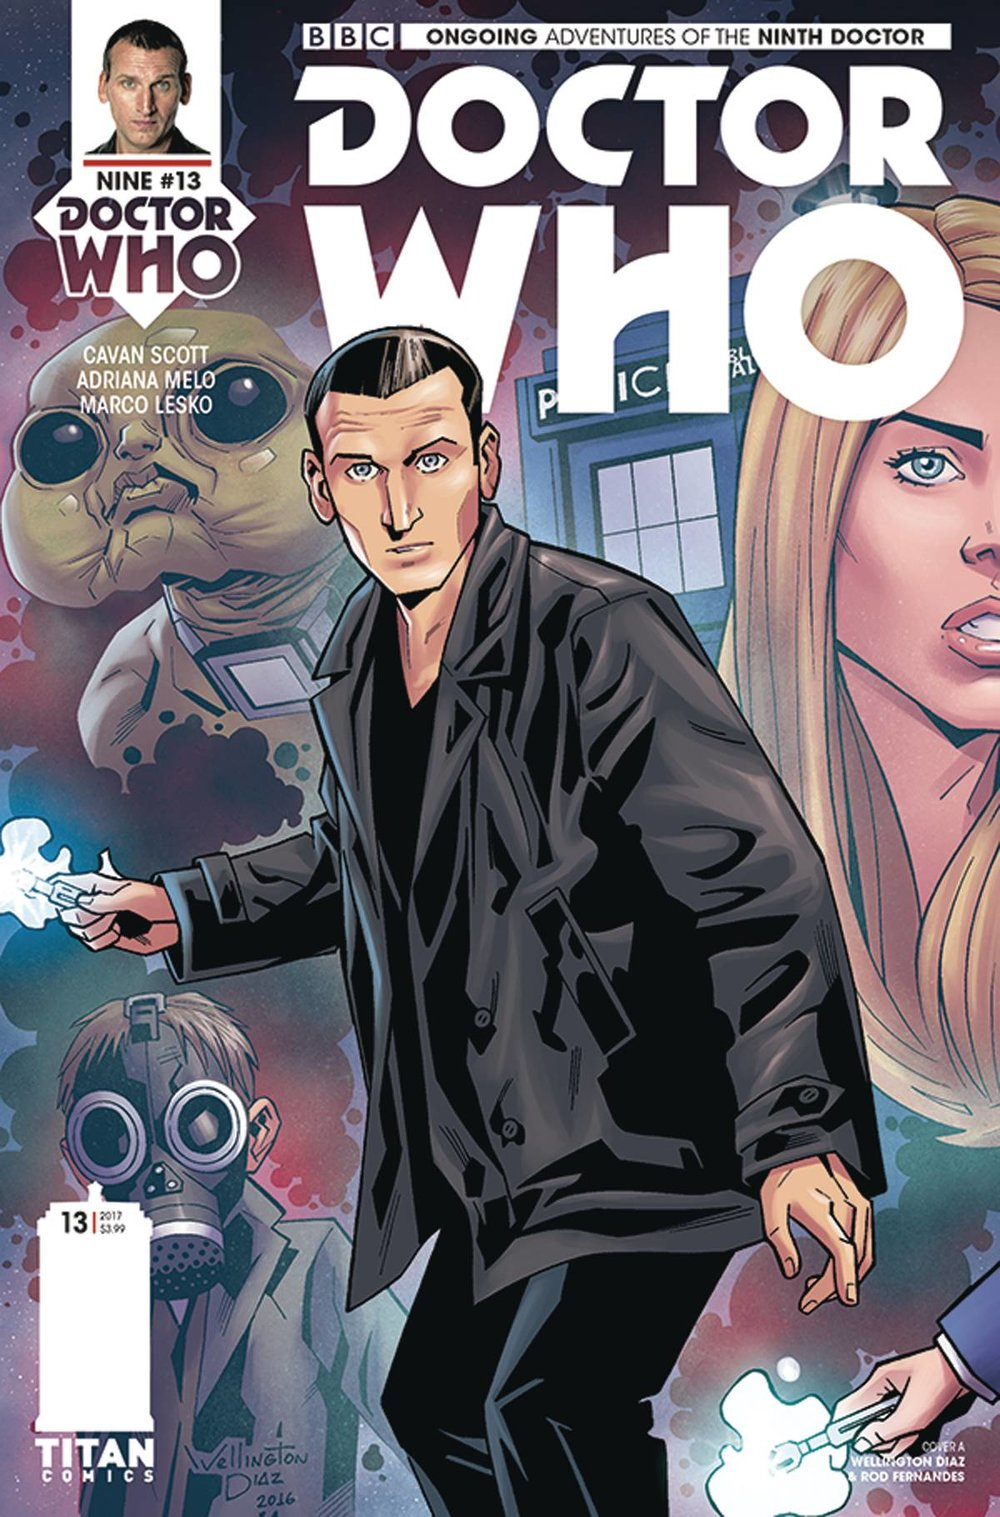 DOCTOR WHO 9TH 13 CVR A ALVES.jpg